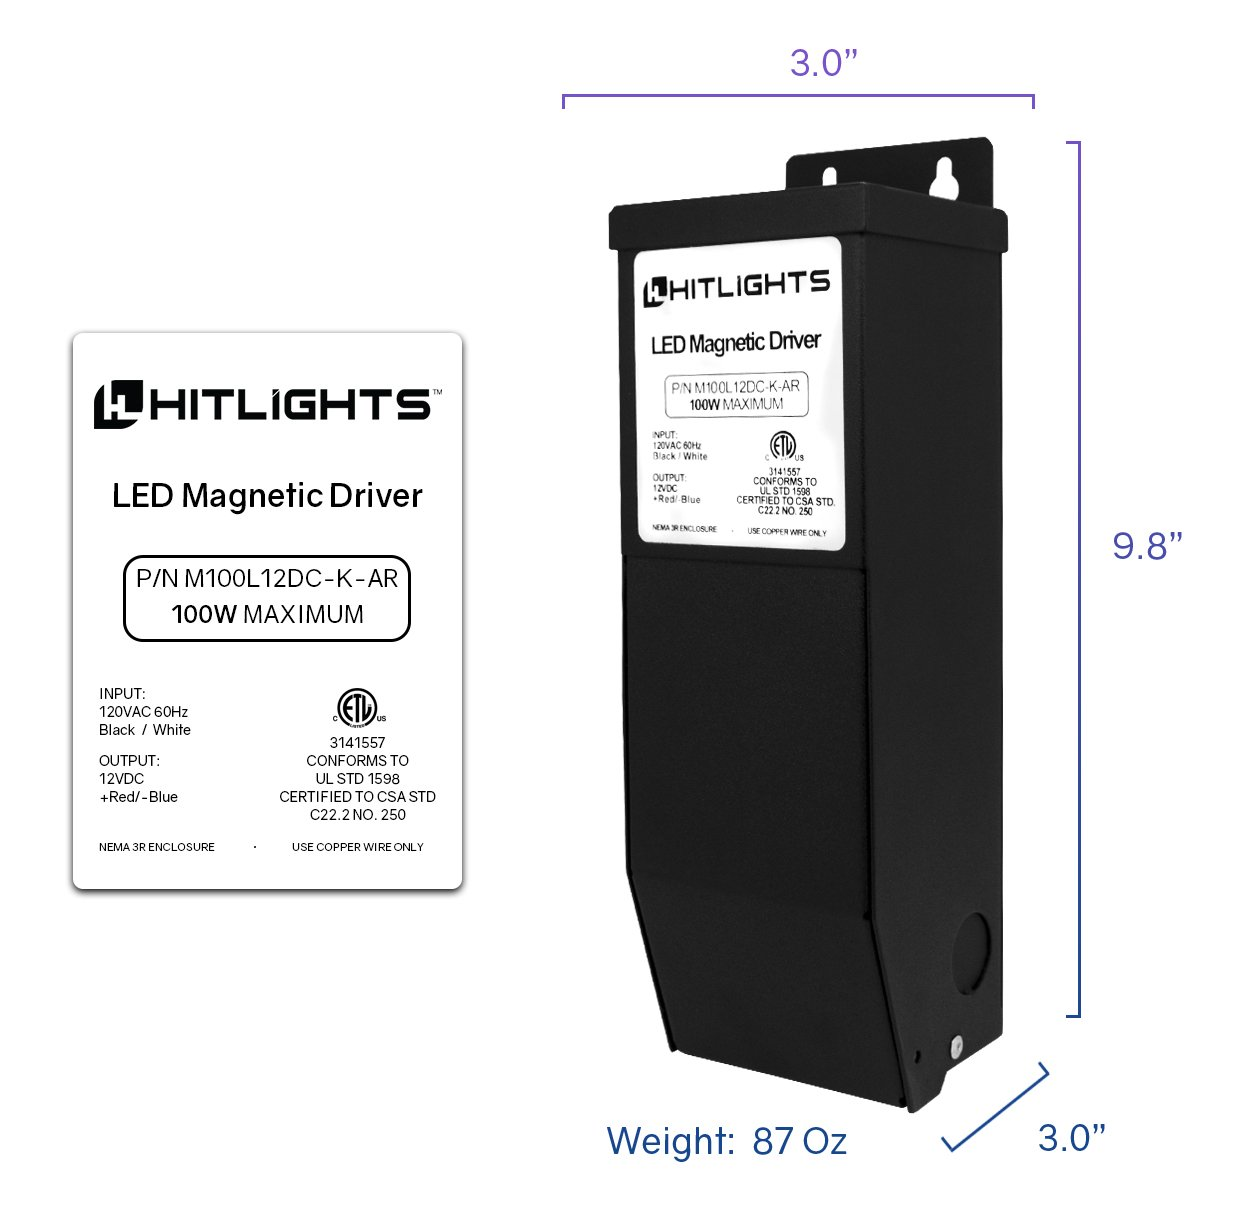 HitLights 100 Watt Dimmable Driver, Magnetic LED Driver - 110V AC-12V DC Transformer. Made in the USA. Compatible with Lutron and Leviton for LED Strip Lights, Constant Voltage LED by HitLights (Image #2)